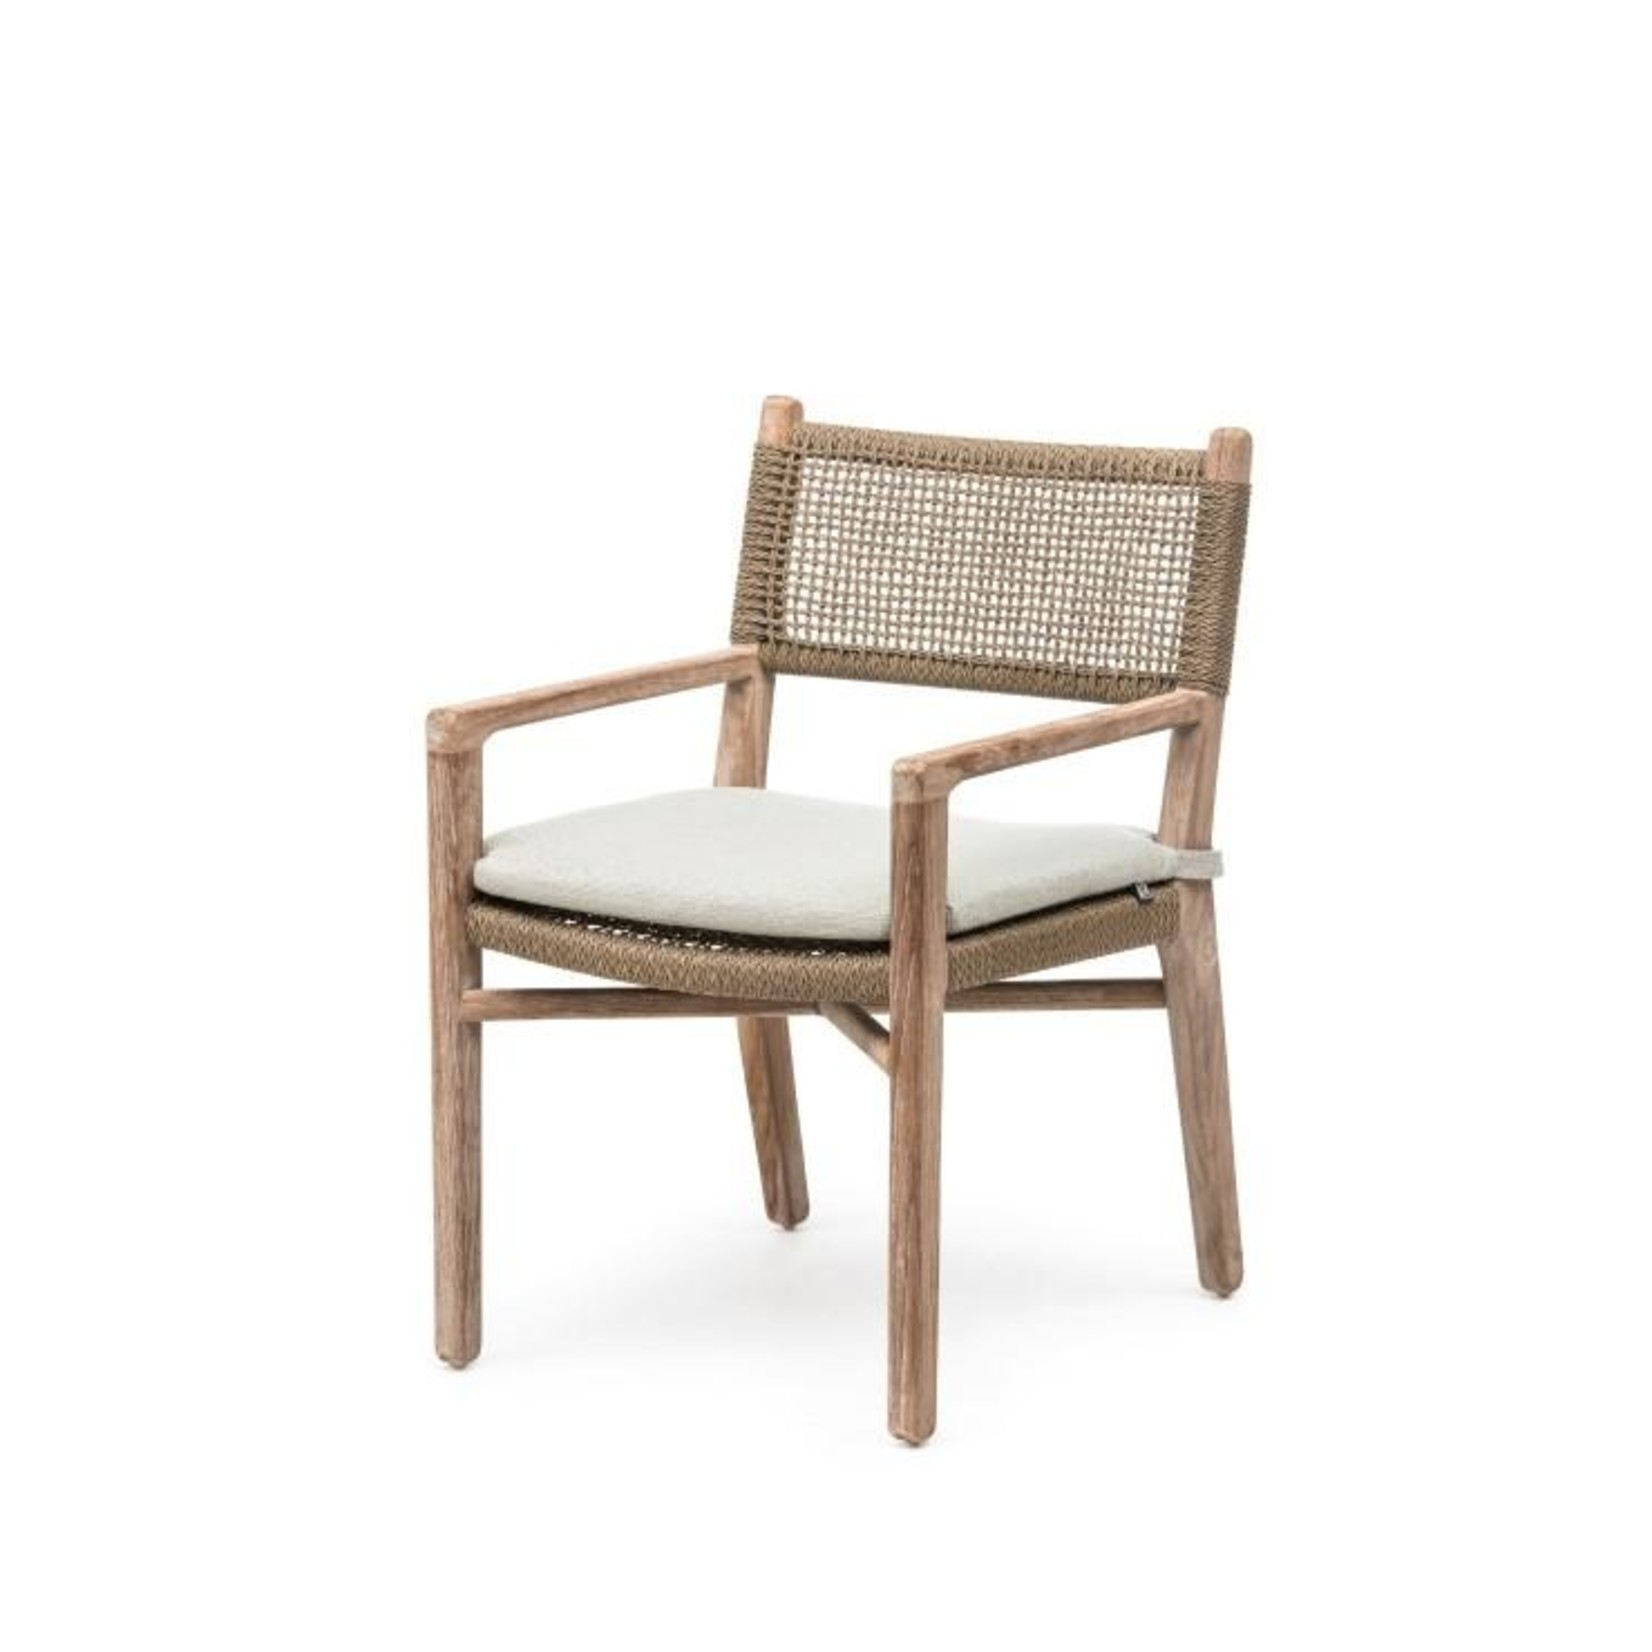 Gommaire Armchair Fiona | Teak Natural Grey / PE Wicker Antique Weed